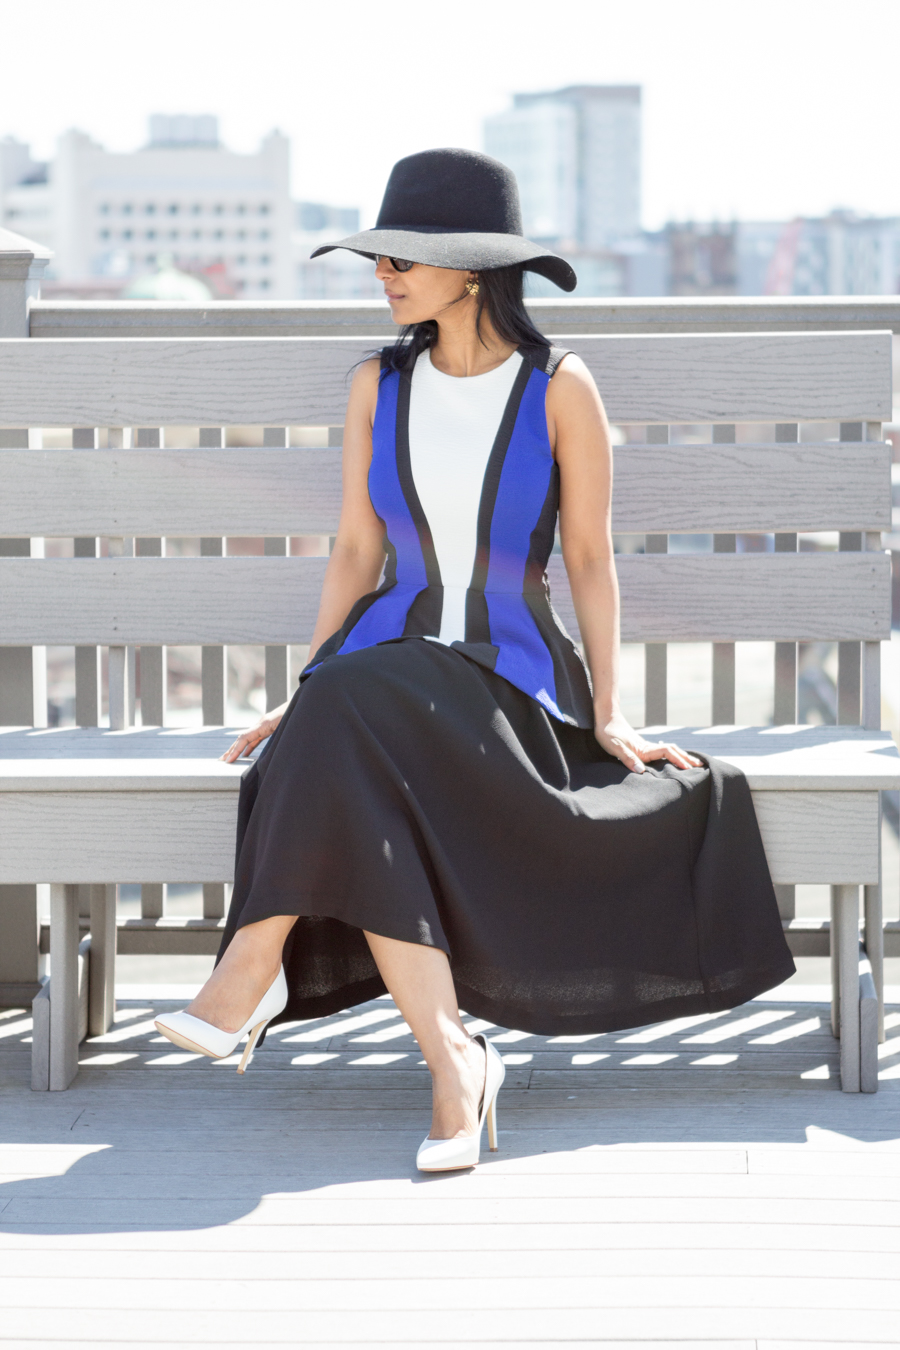 circle skirt, peplum top, spring fashion, white pumps, charles david, color-blocked, bright blue, black floppy hat, sporty chic, minimalist, spring lookbook, petite fashion, mom style, mom fashion, boston street style, lady-like